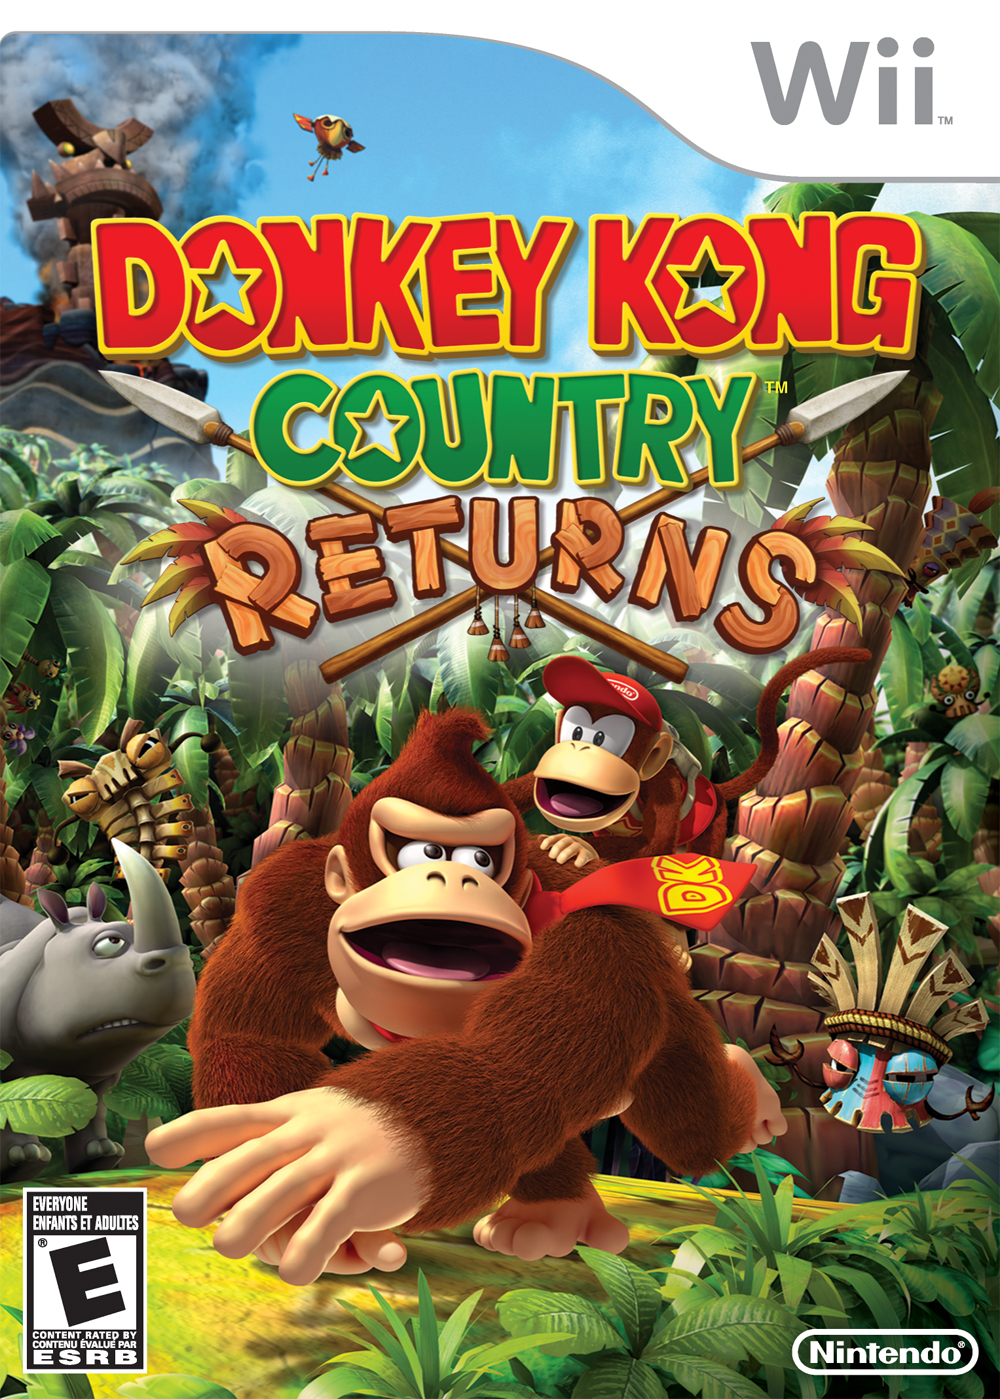 Image result for donkey kong country returns box art